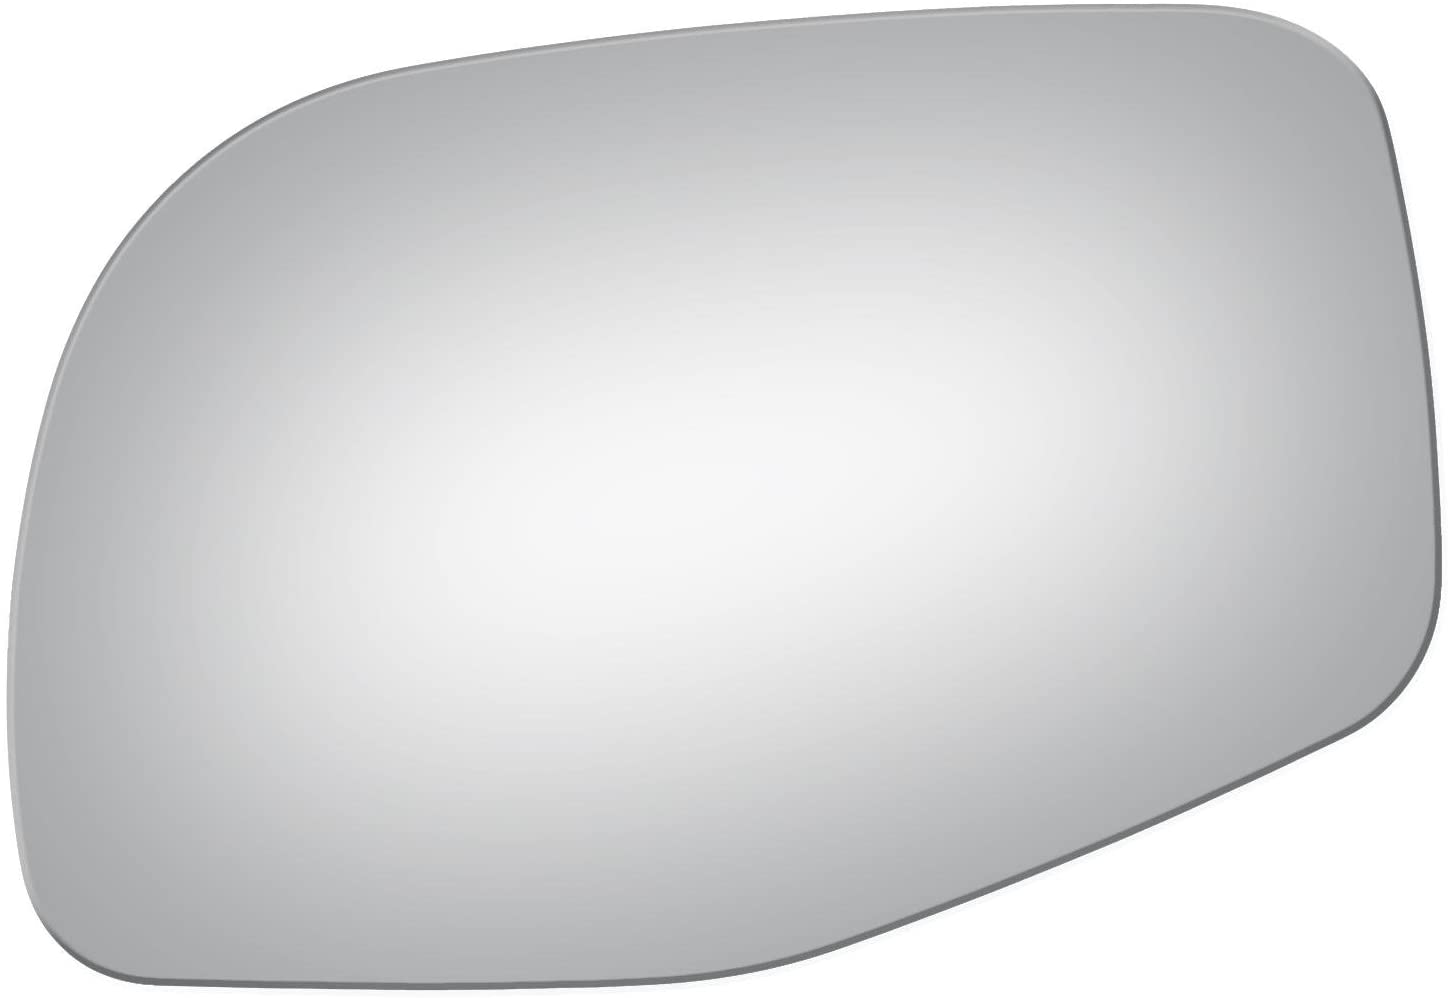 Driver Side Replacement Mirror Glass for FORD EXPLORER RANGER SPORT TRAC (1995 1996 1997 1998 1999 2000 2001 2002 2003 2004 2005) MERCURY MOUNTAINEER (1997 1998 1999 2000 2001 2002 2003 2004 2005)